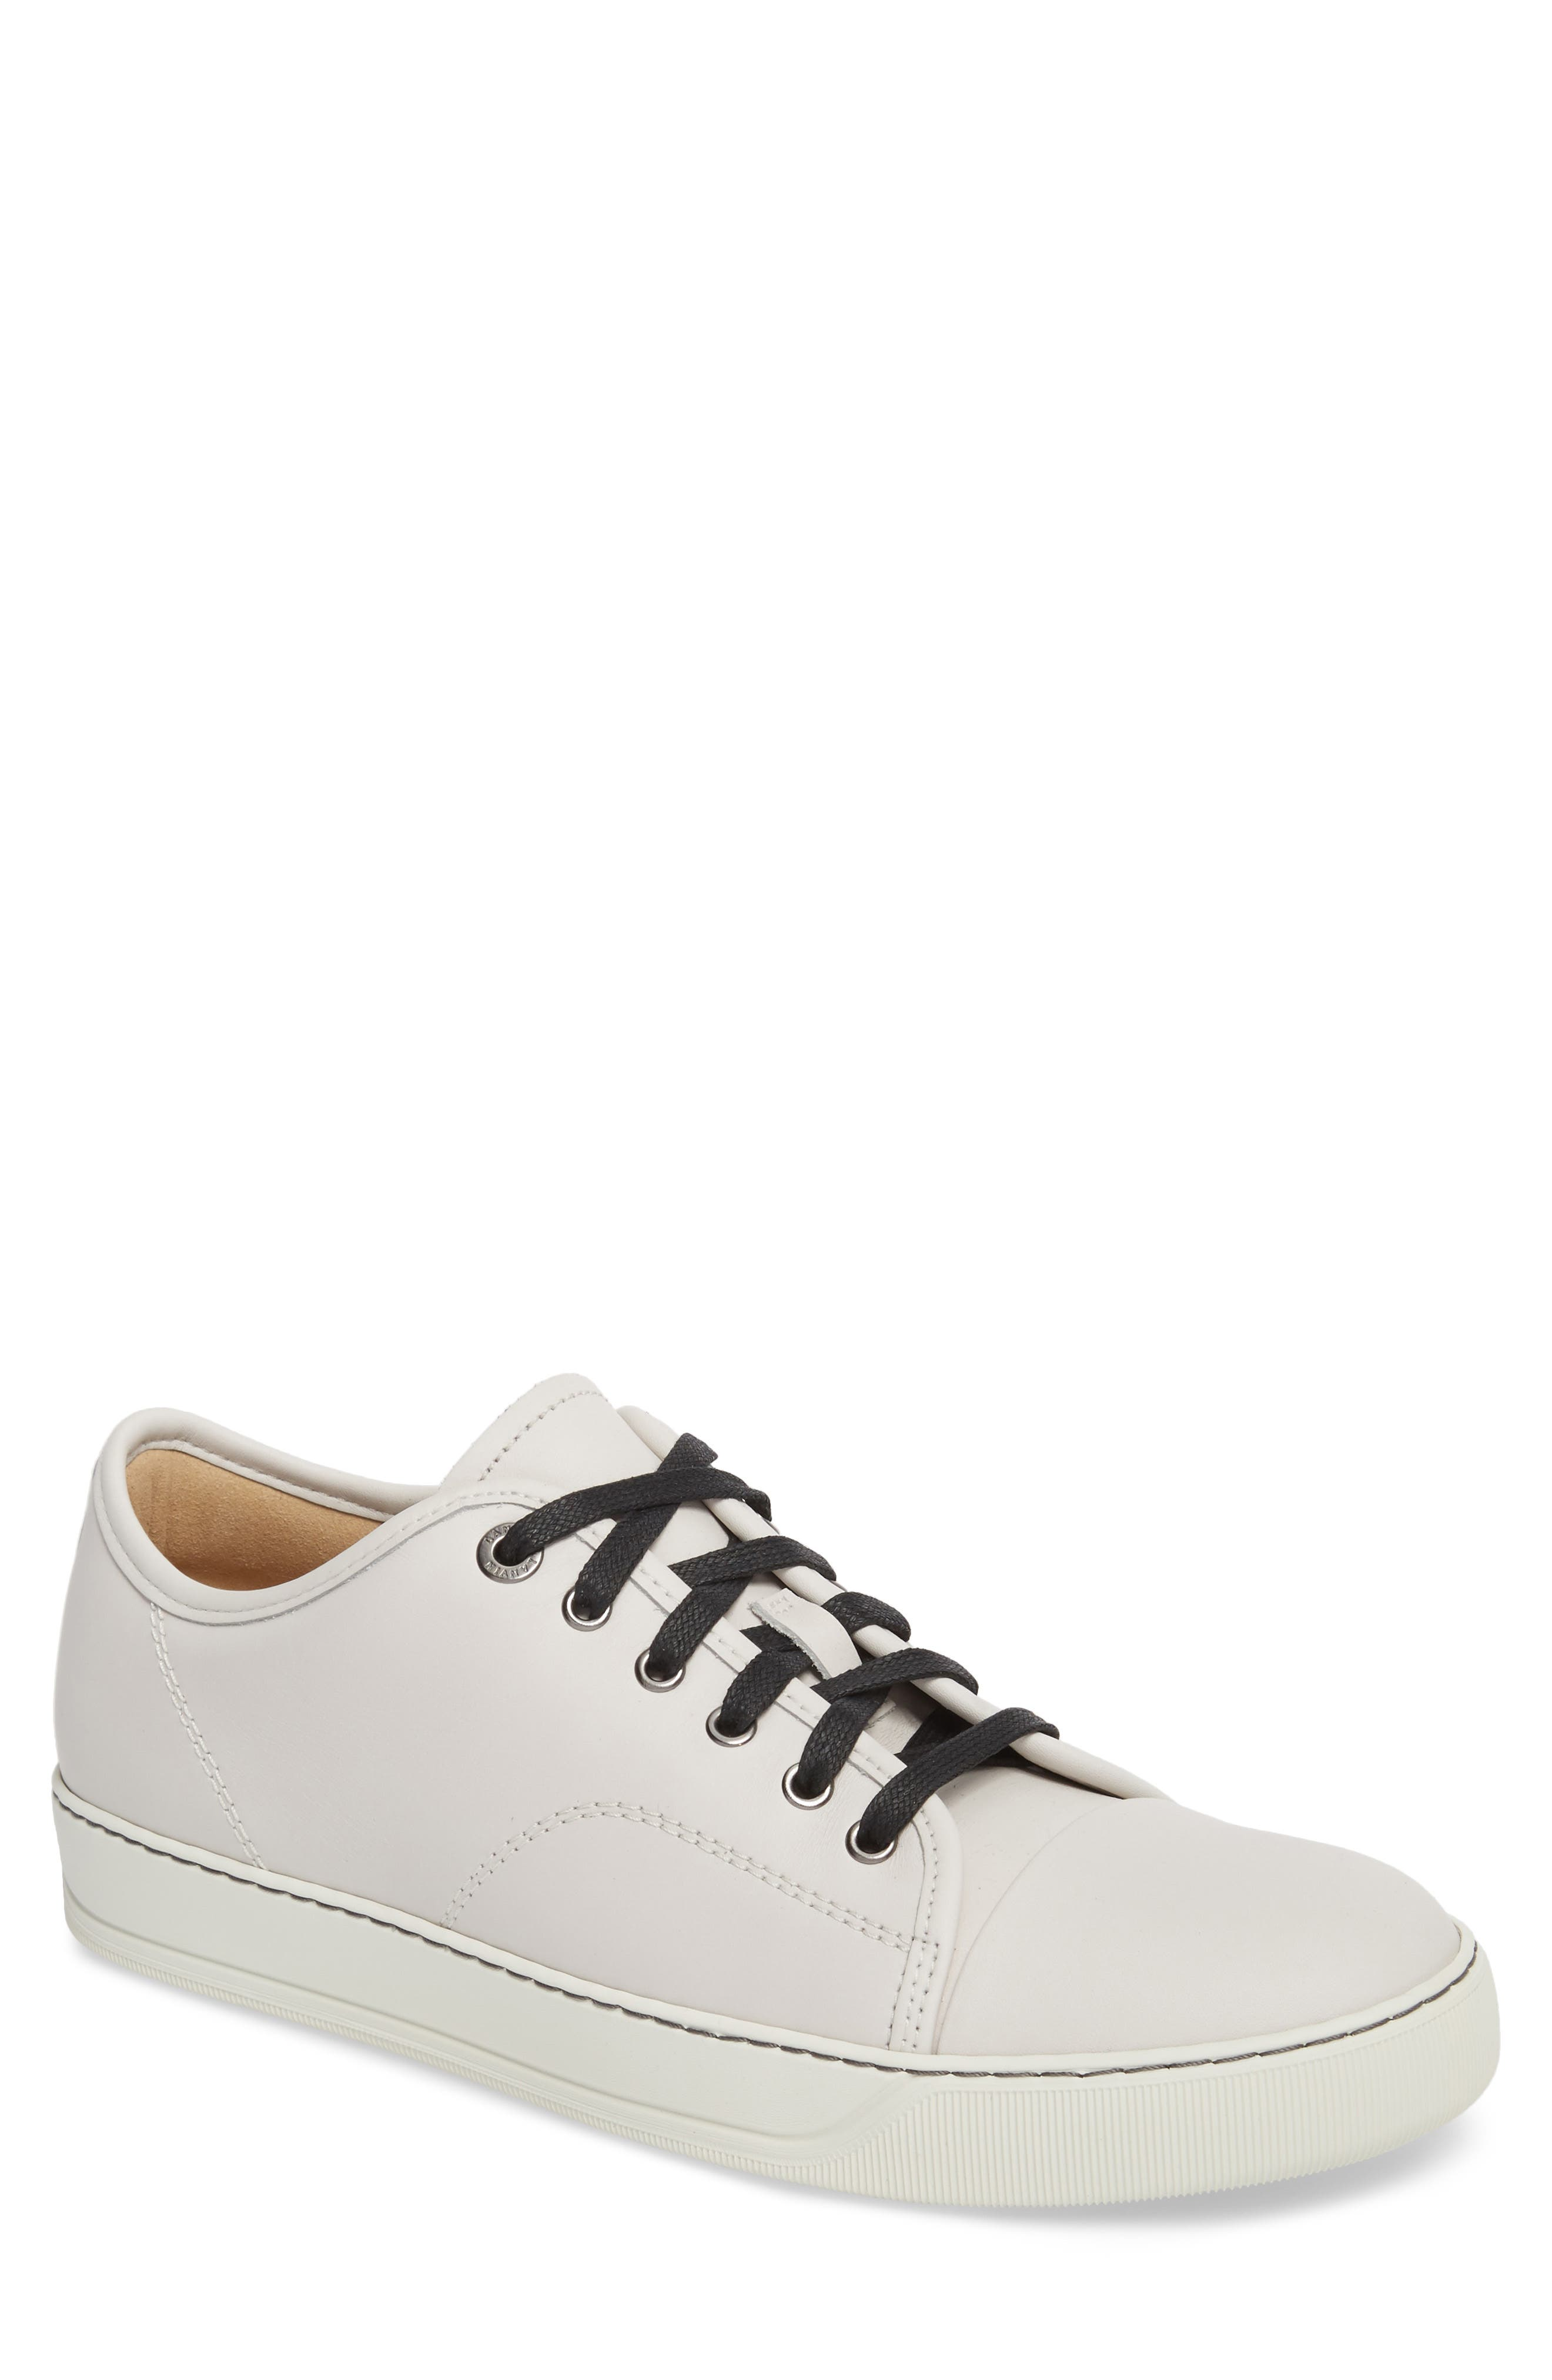 LANVIN Low Top Sneaker, Main, color, 102